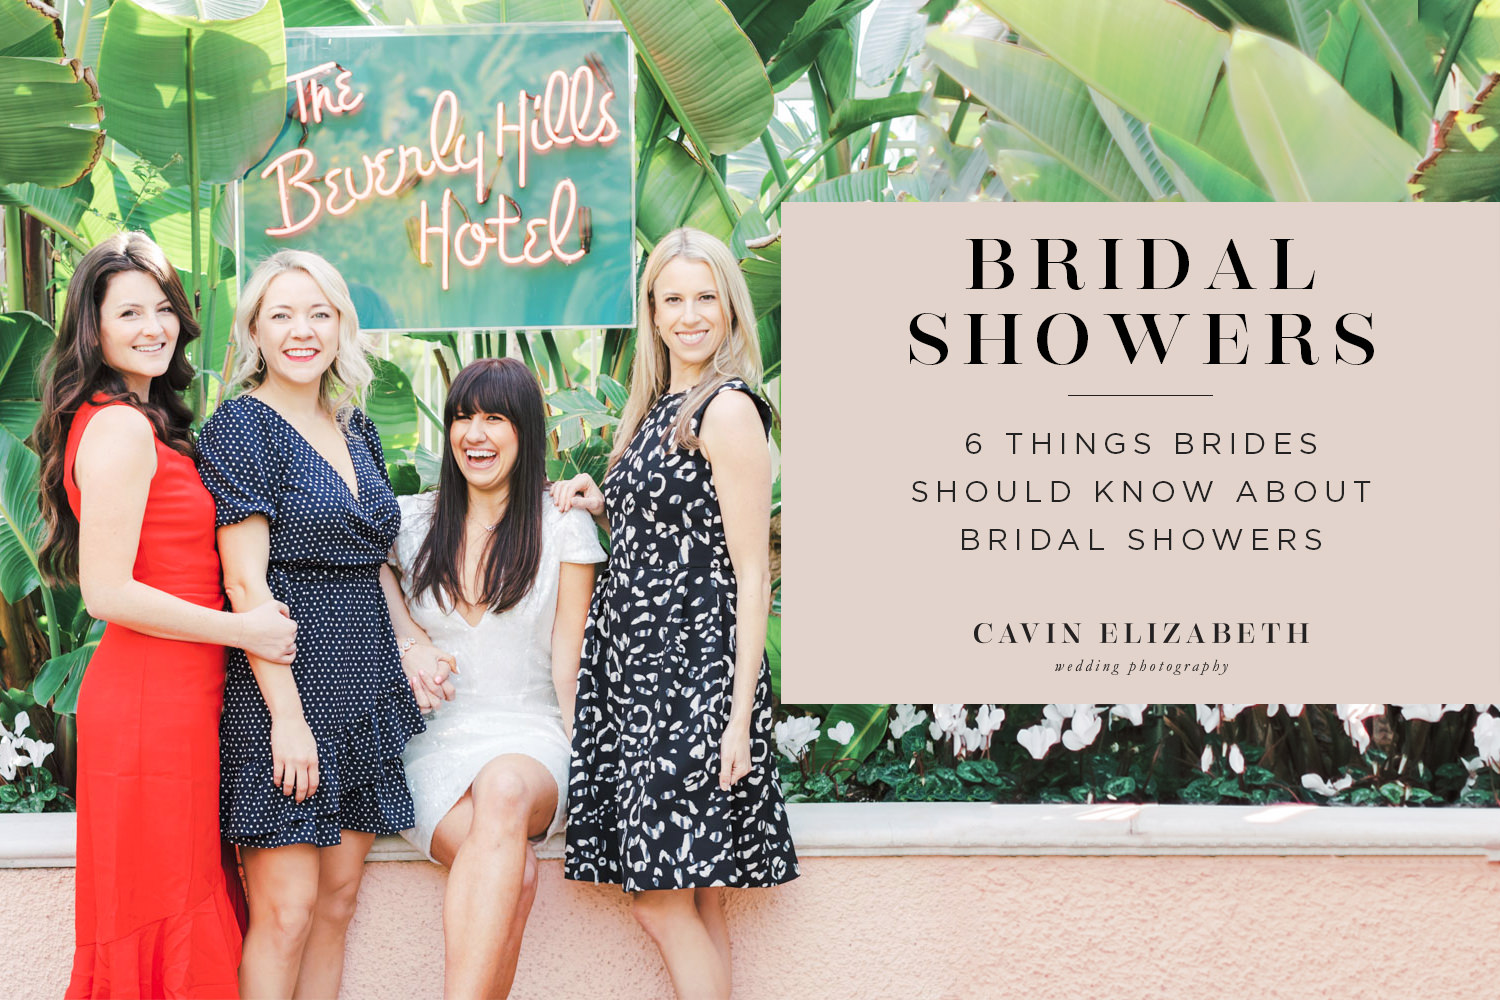 6 Things Brides Should Know About Bridal Showers: Who hosts, when to have the shower, who to invite, how many showers can you have, and more!